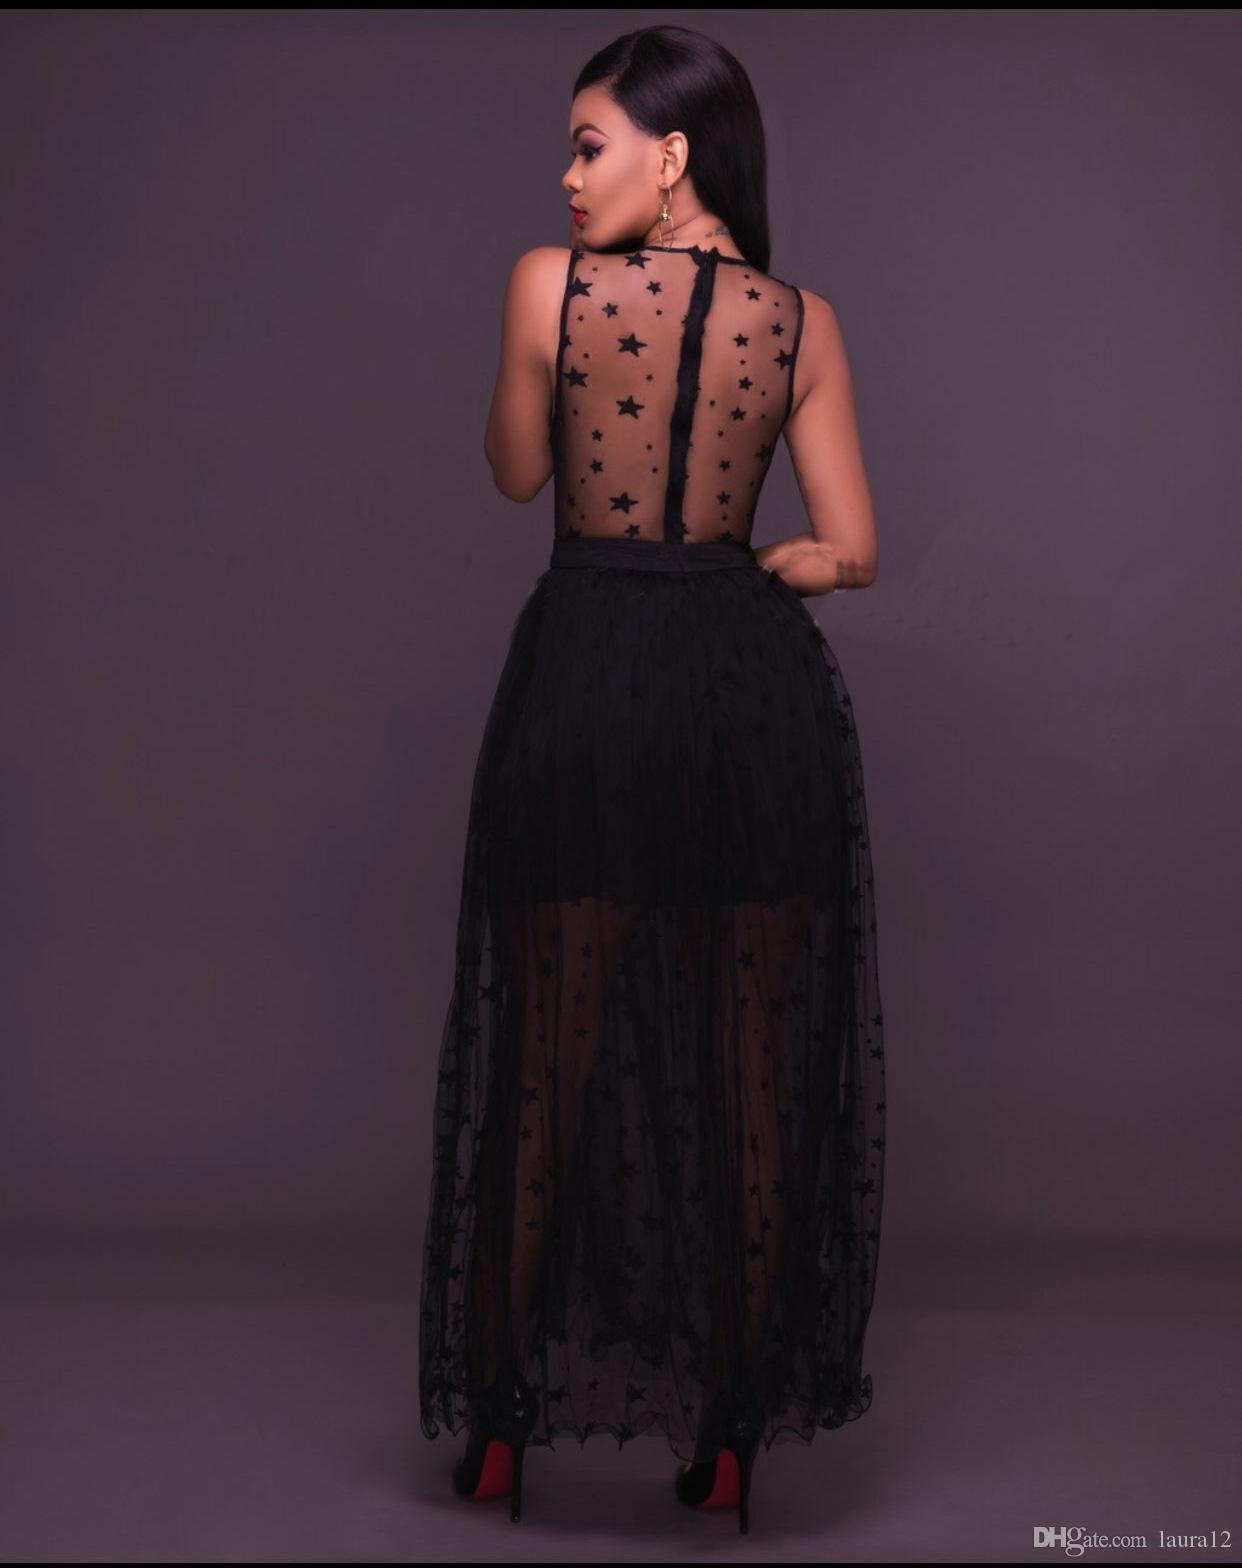 2017 New Black Lace Applique A line See Through Sexy Women Party Dresses Star Printed Tulle Ankle Length Lady Gowns In Stock S--XL